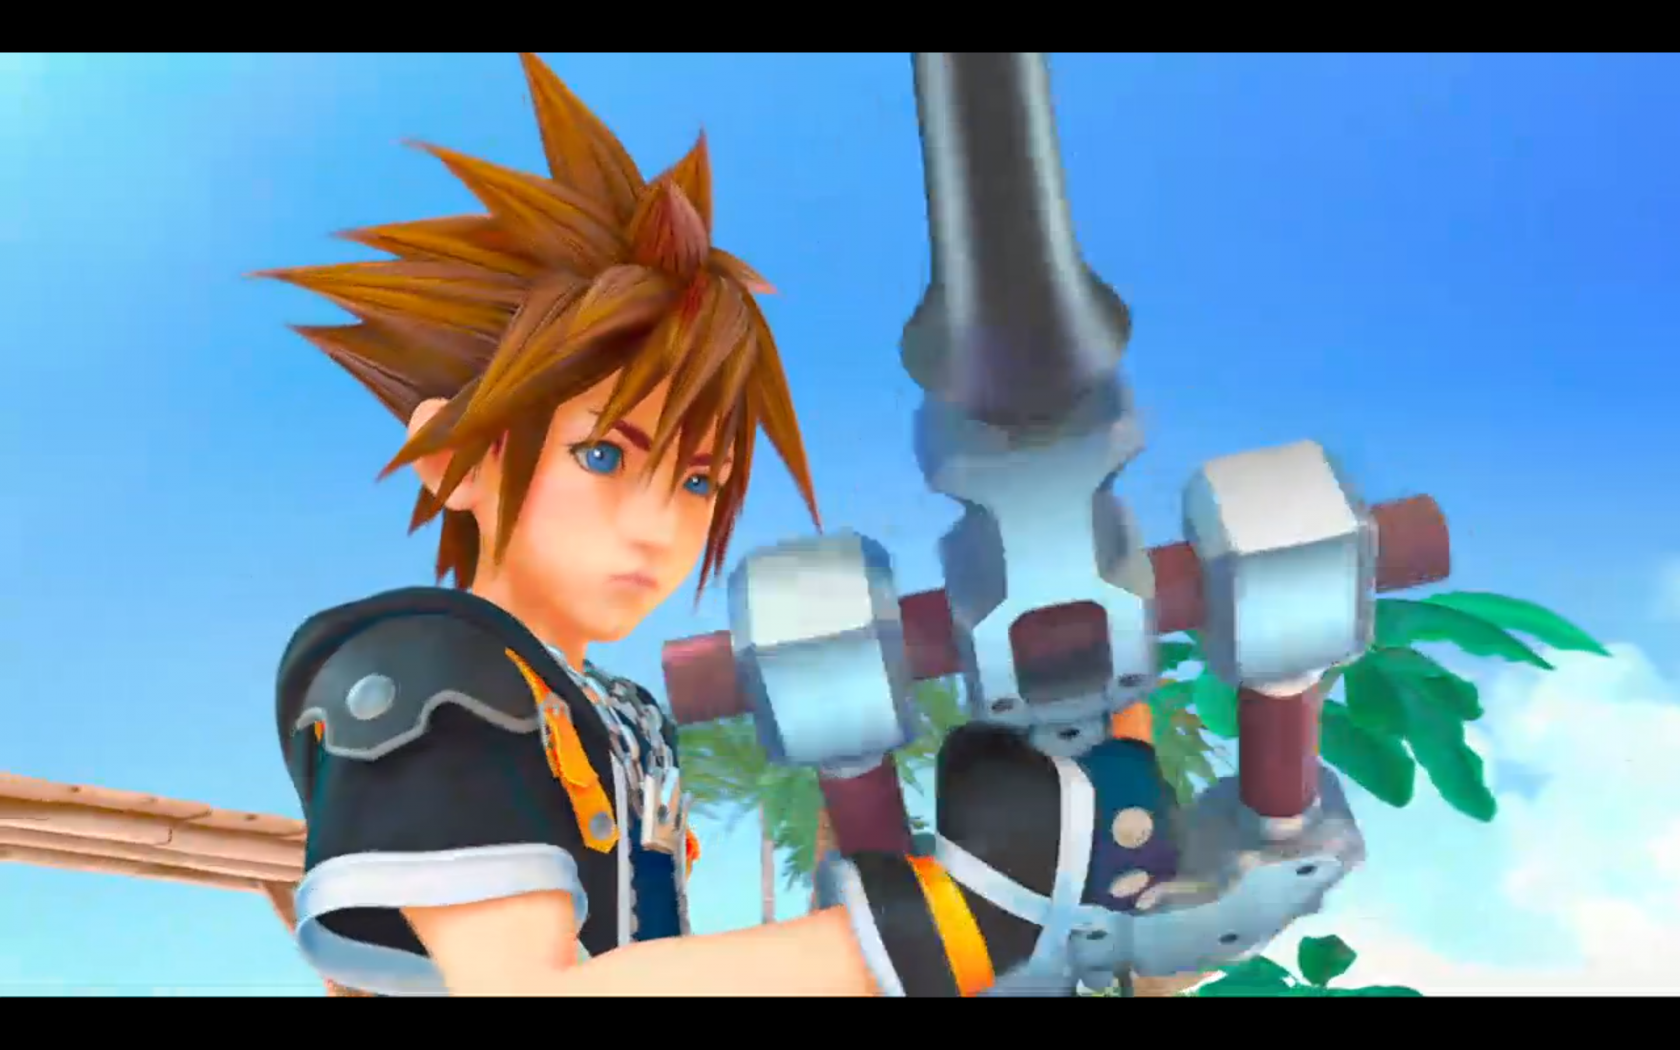 Free Download Kingdom Hearts 3 Sora Wallpaper 1920x1200 For Your